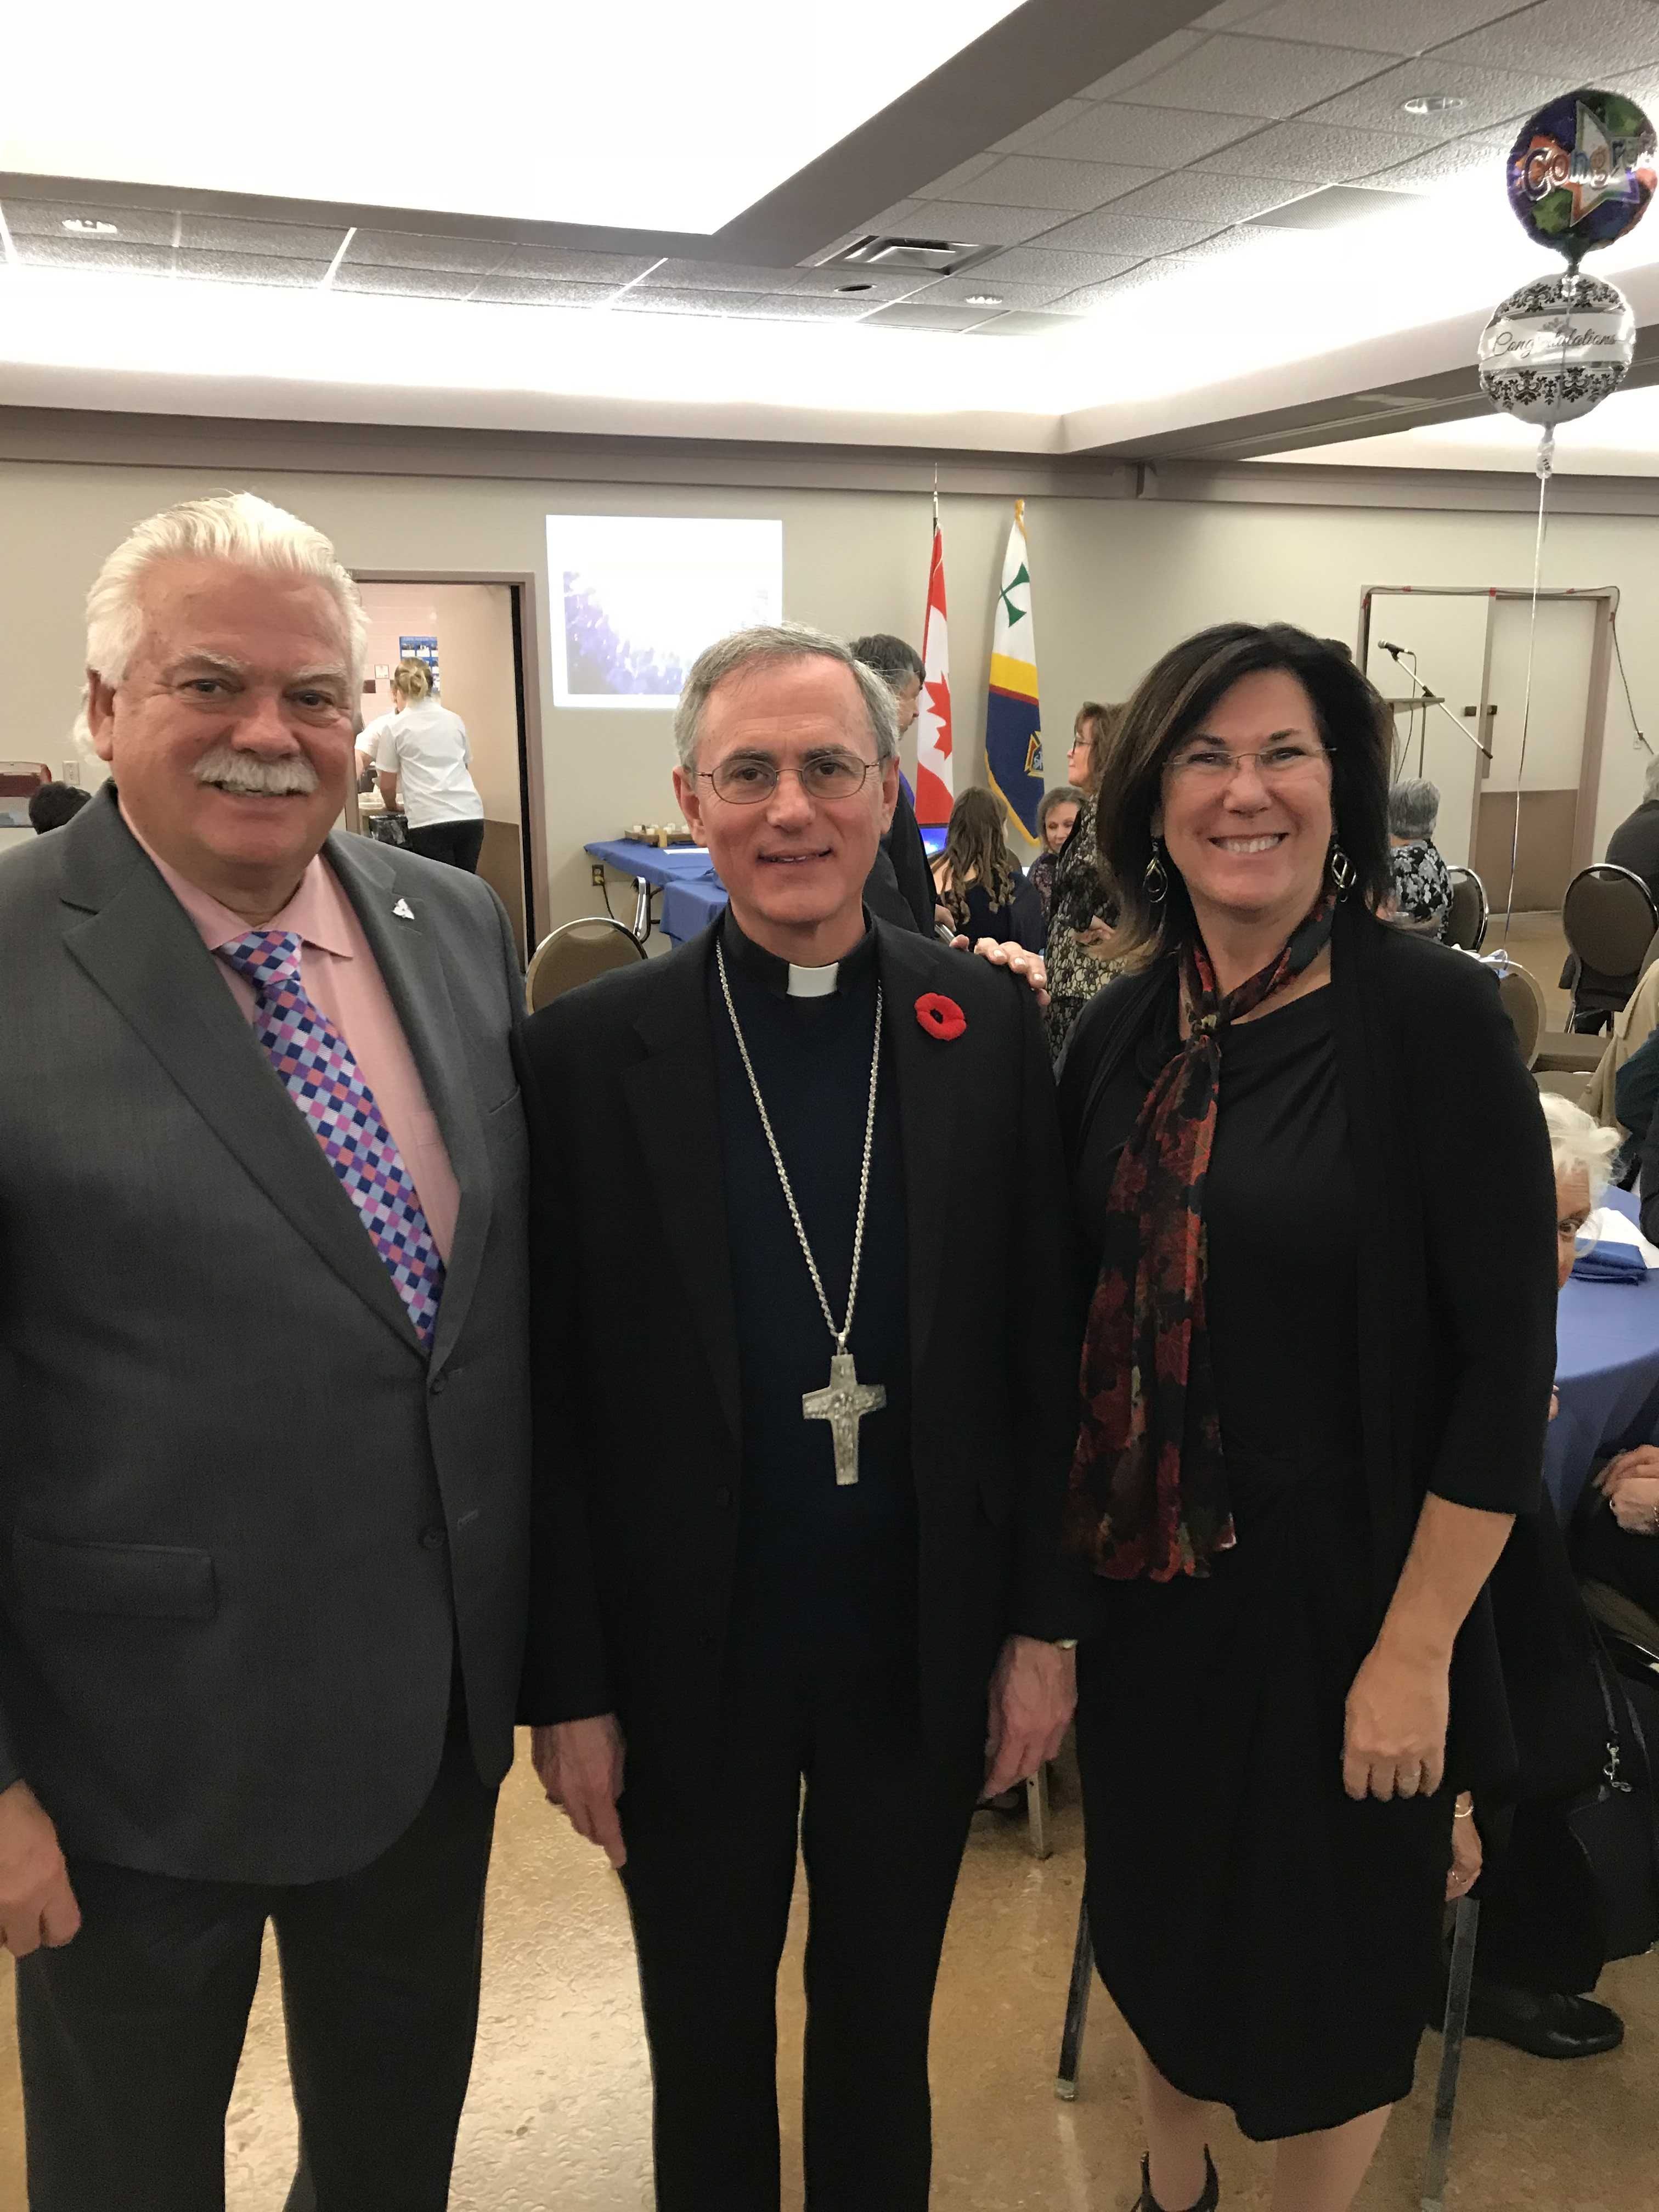 Bishop_Ronald_Fabbro_at_Knights_of_Columbus_Hospice_Oct_2017.jpg